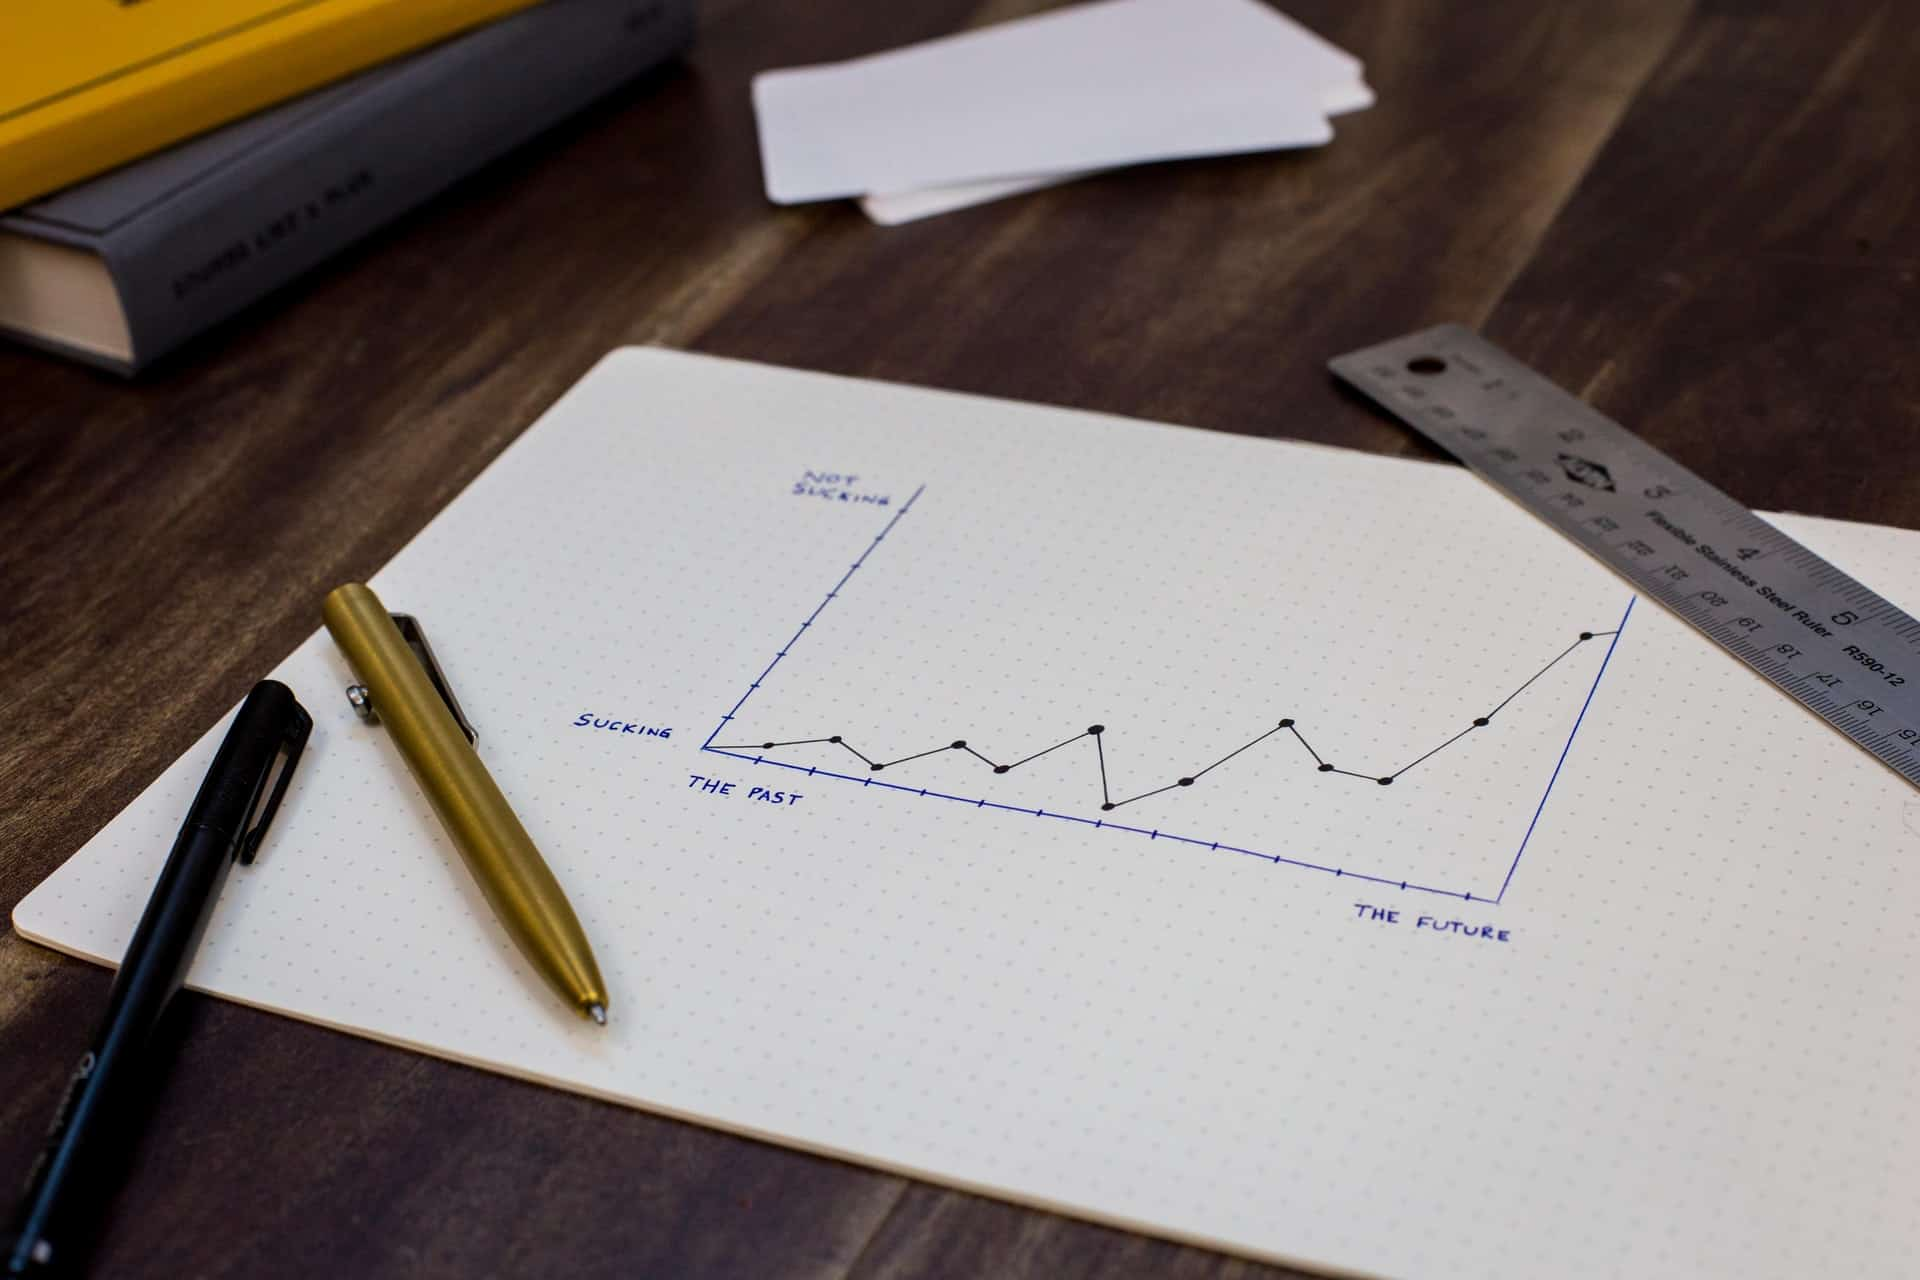 Sales chart on paper